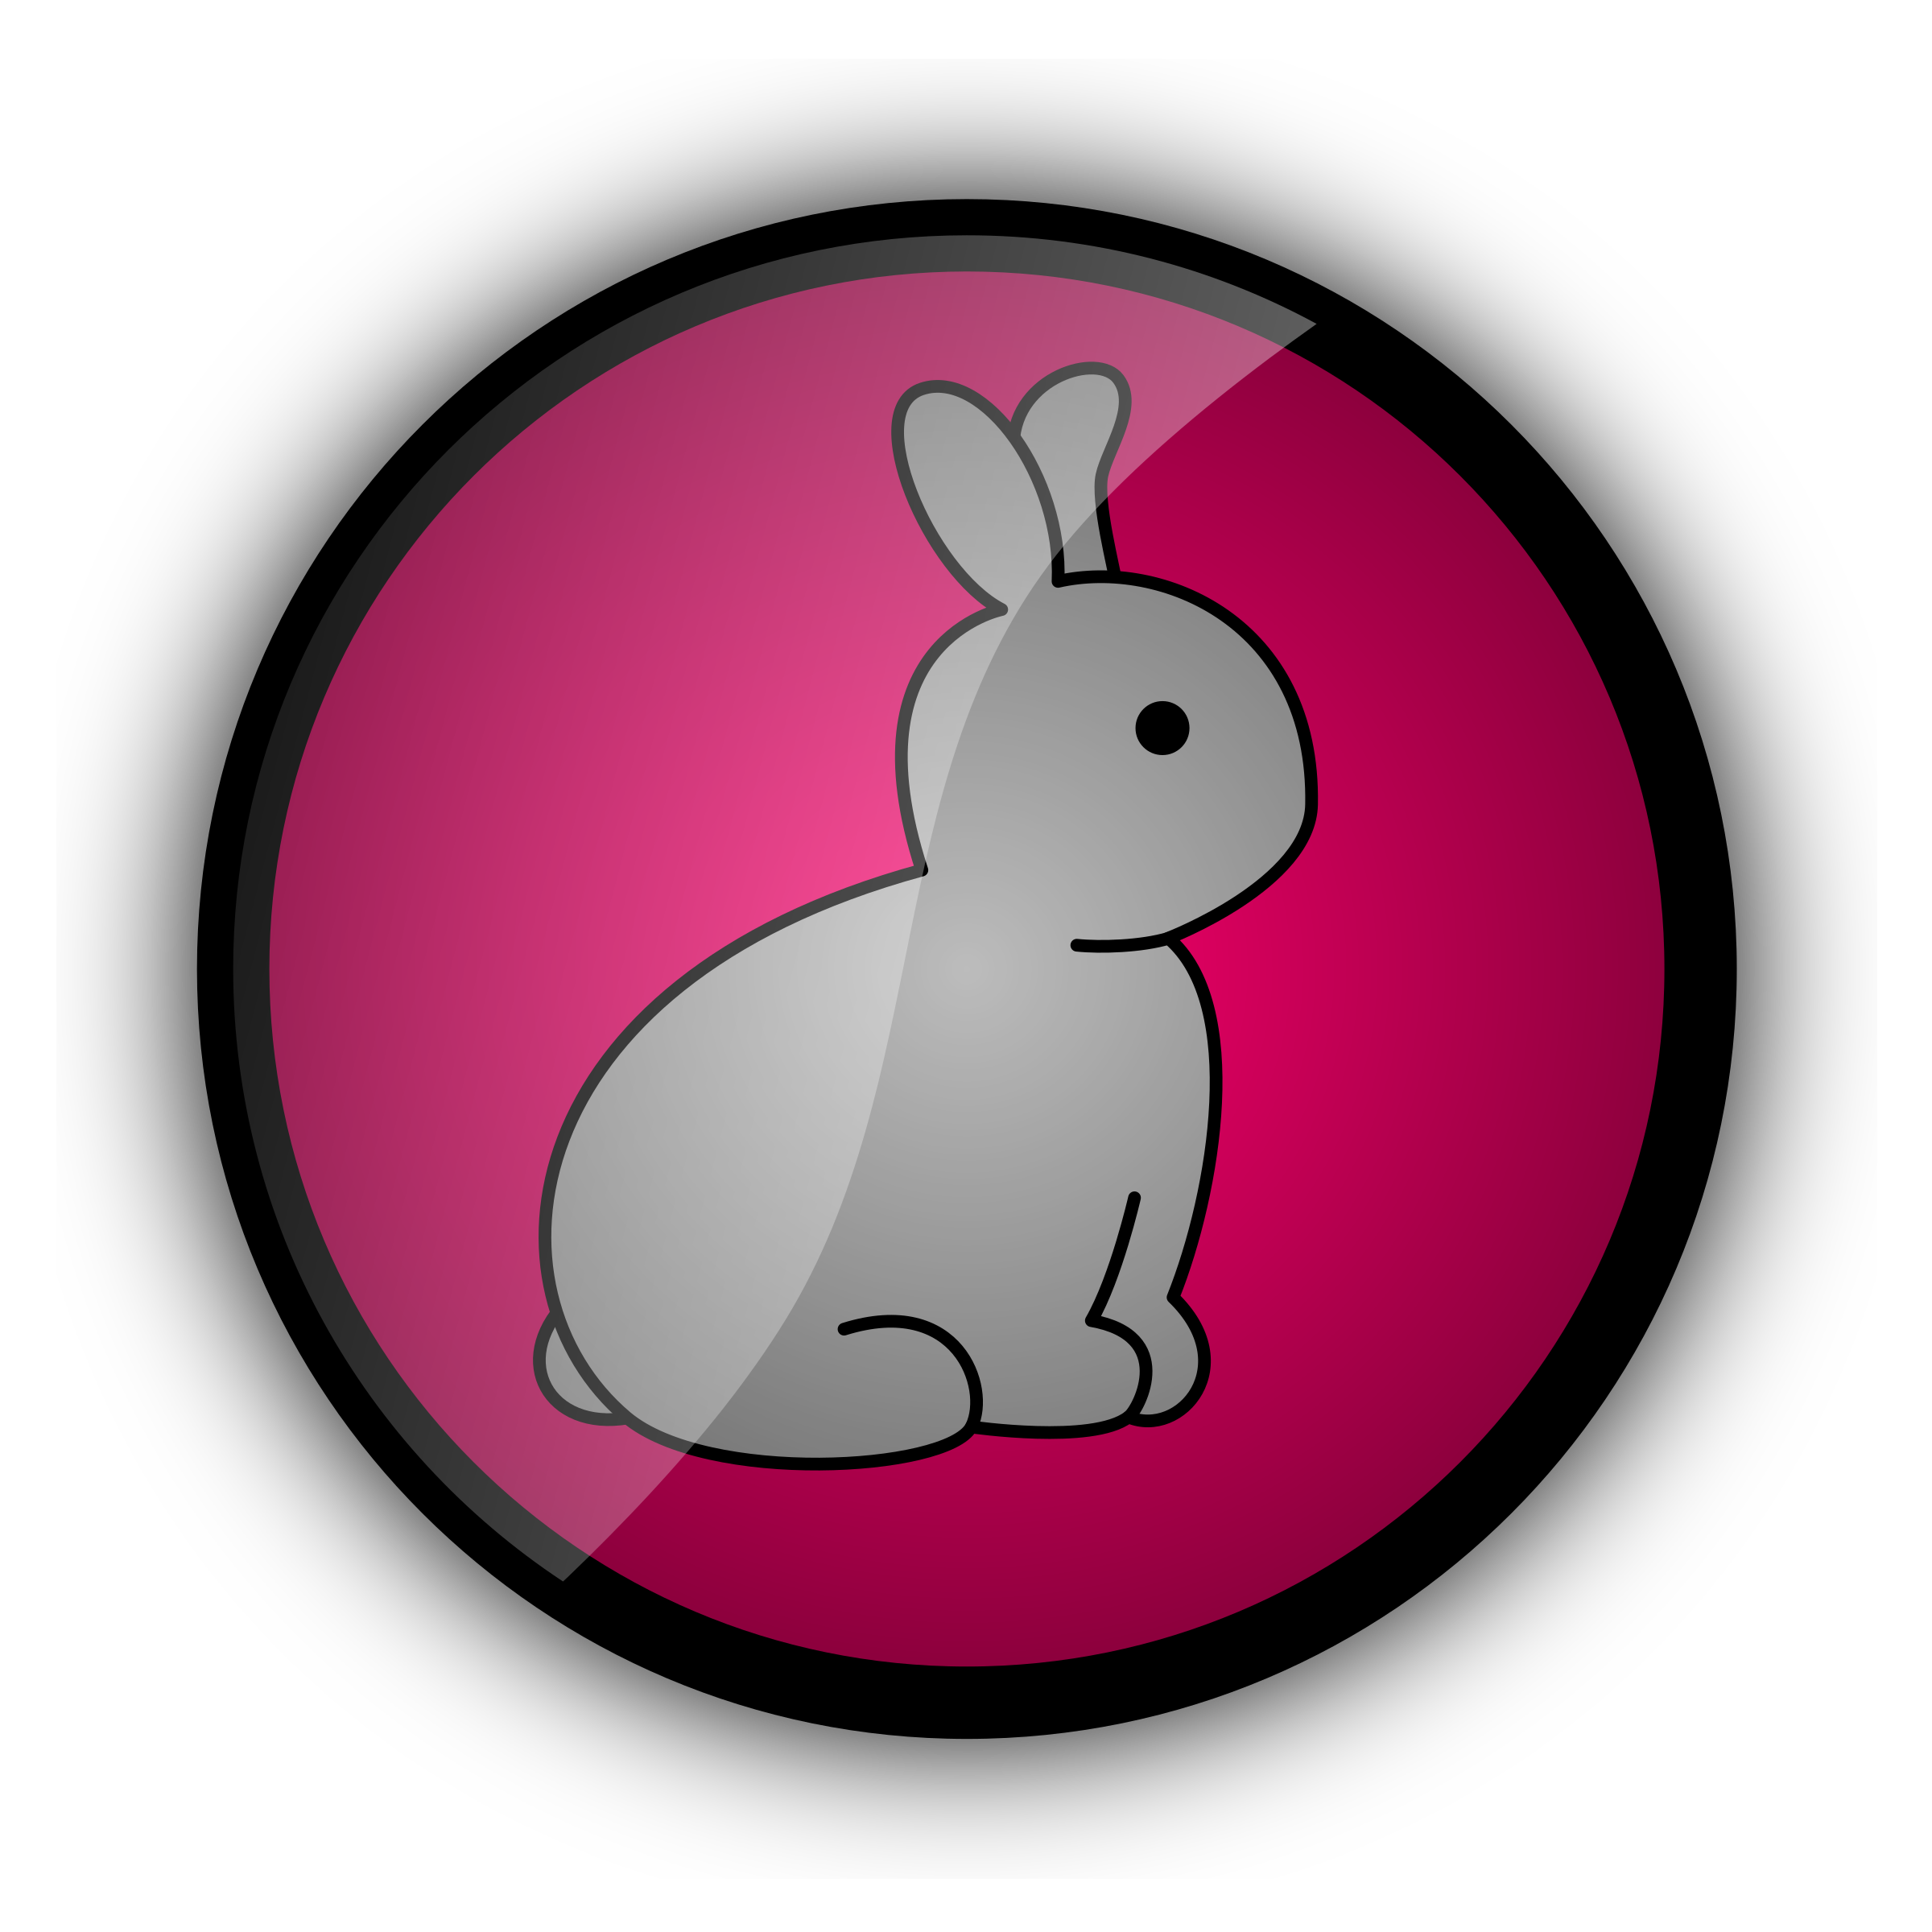 Little Rabbit by inkscapeforum.it